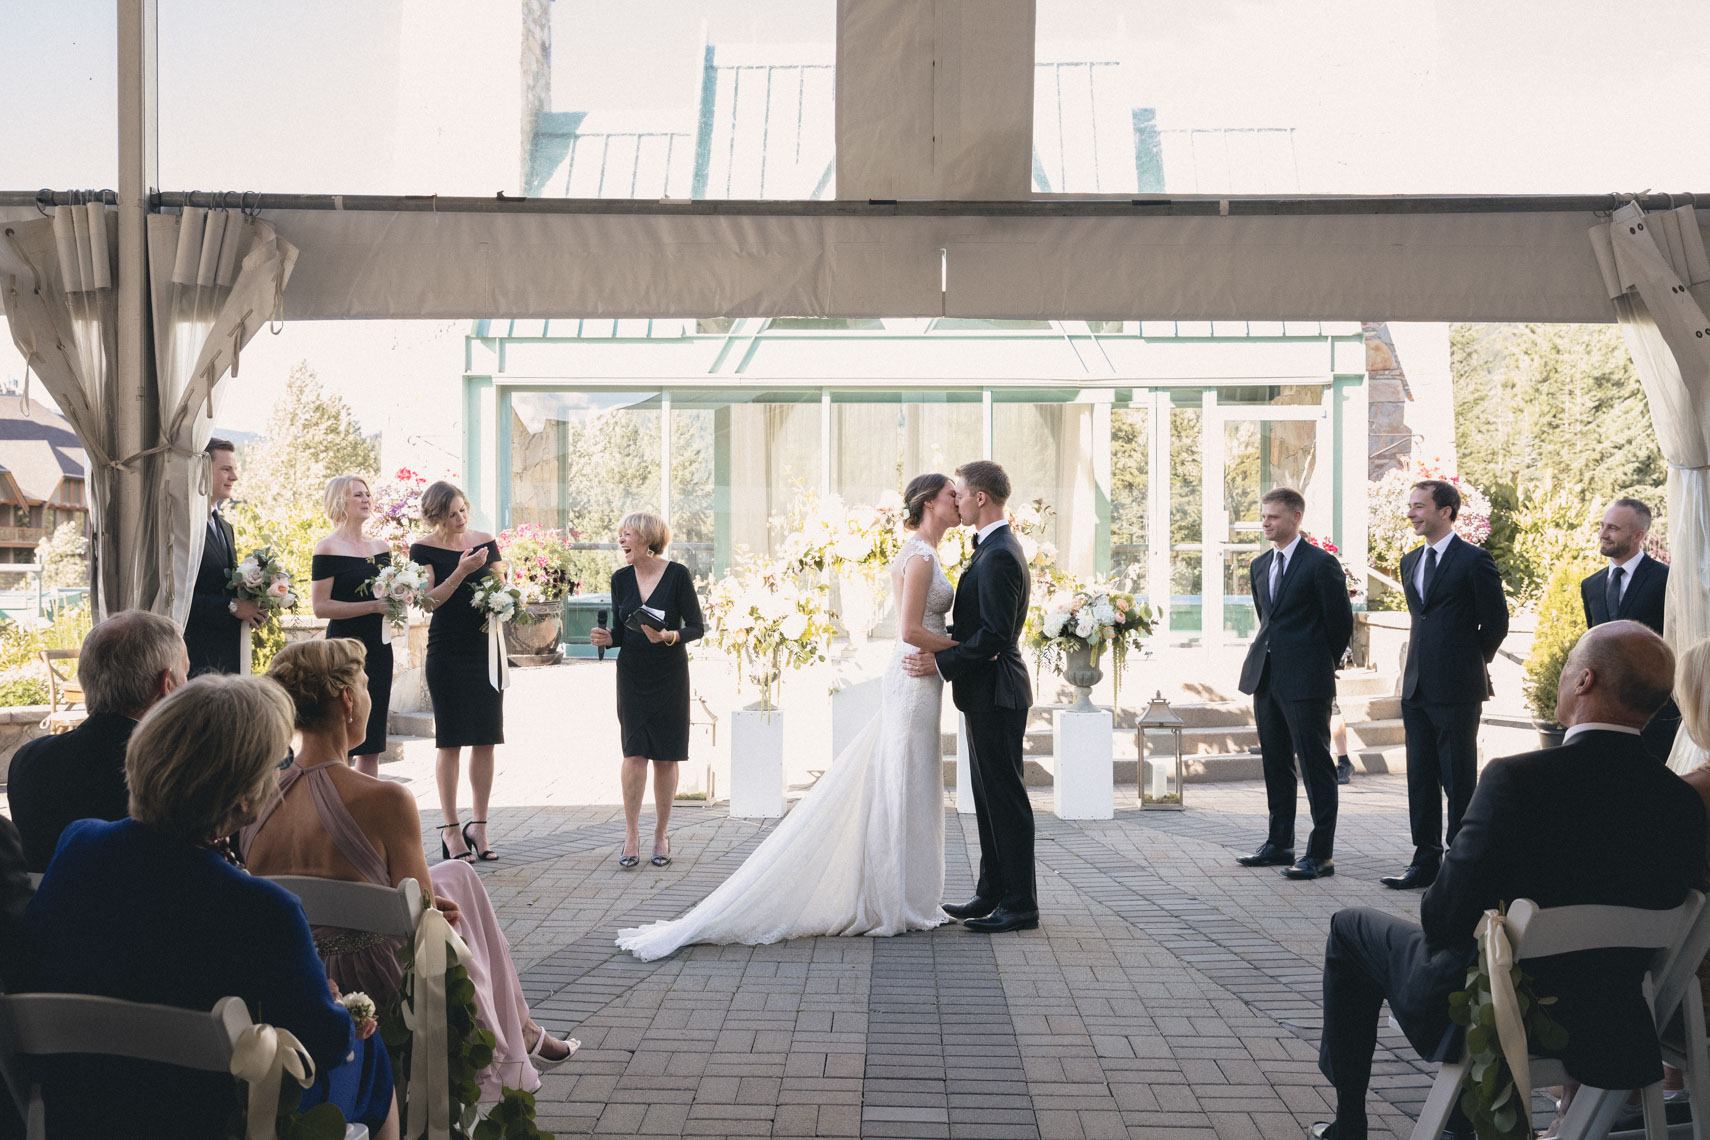 First kiss between bride at groom at rooftop ceremony in Whistler, BC